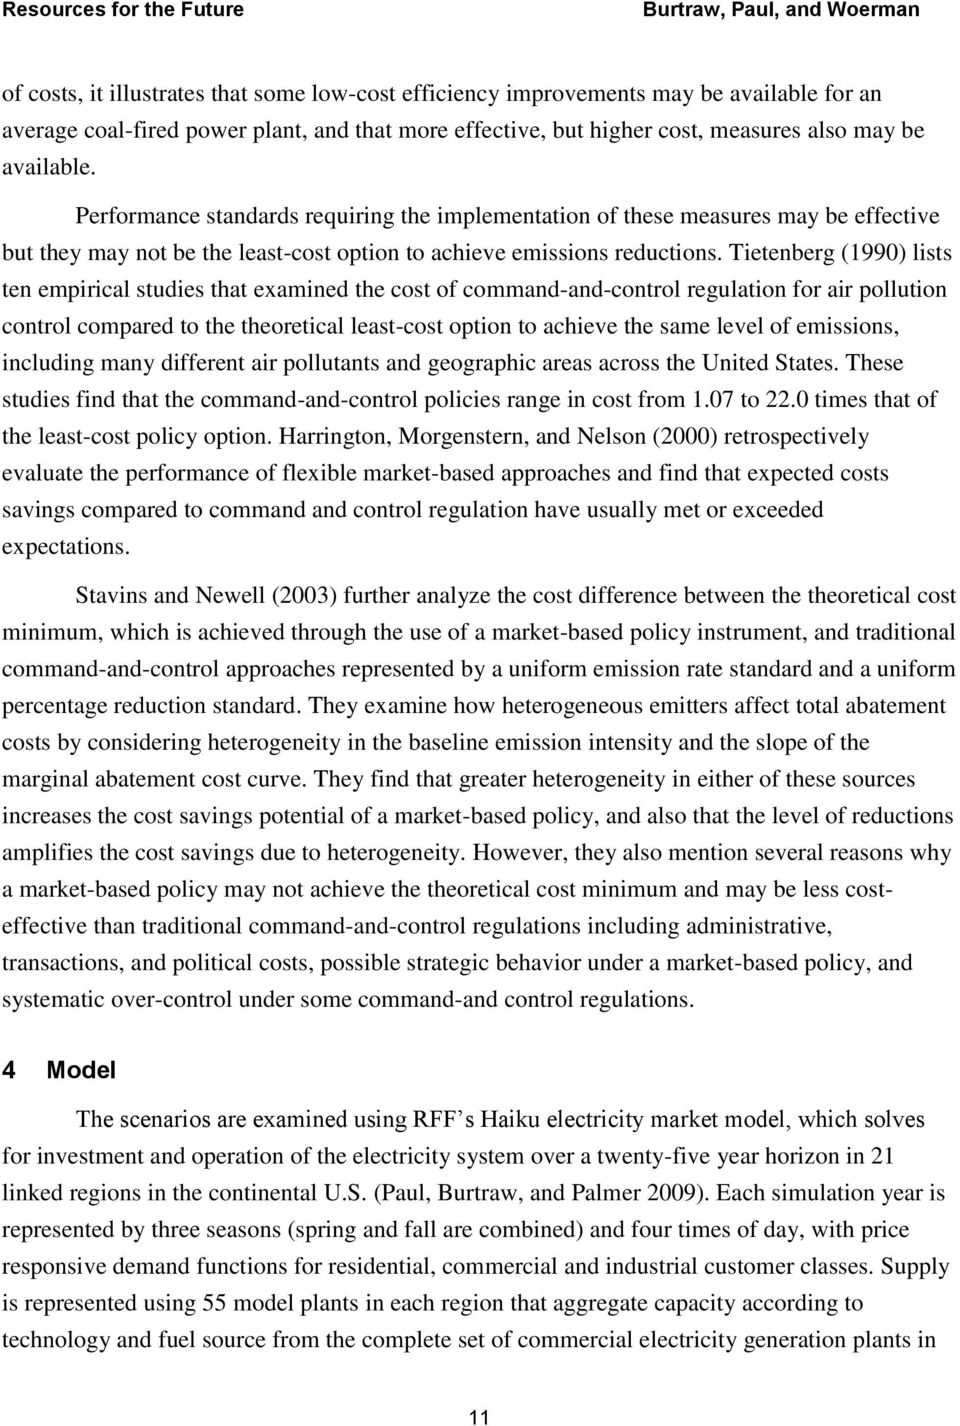 Tietenberg (1990) lists ten empirical studies that examined the cost of command-and-control regulation for air pollution control compared to the theoretical least-cost option to achieve the same